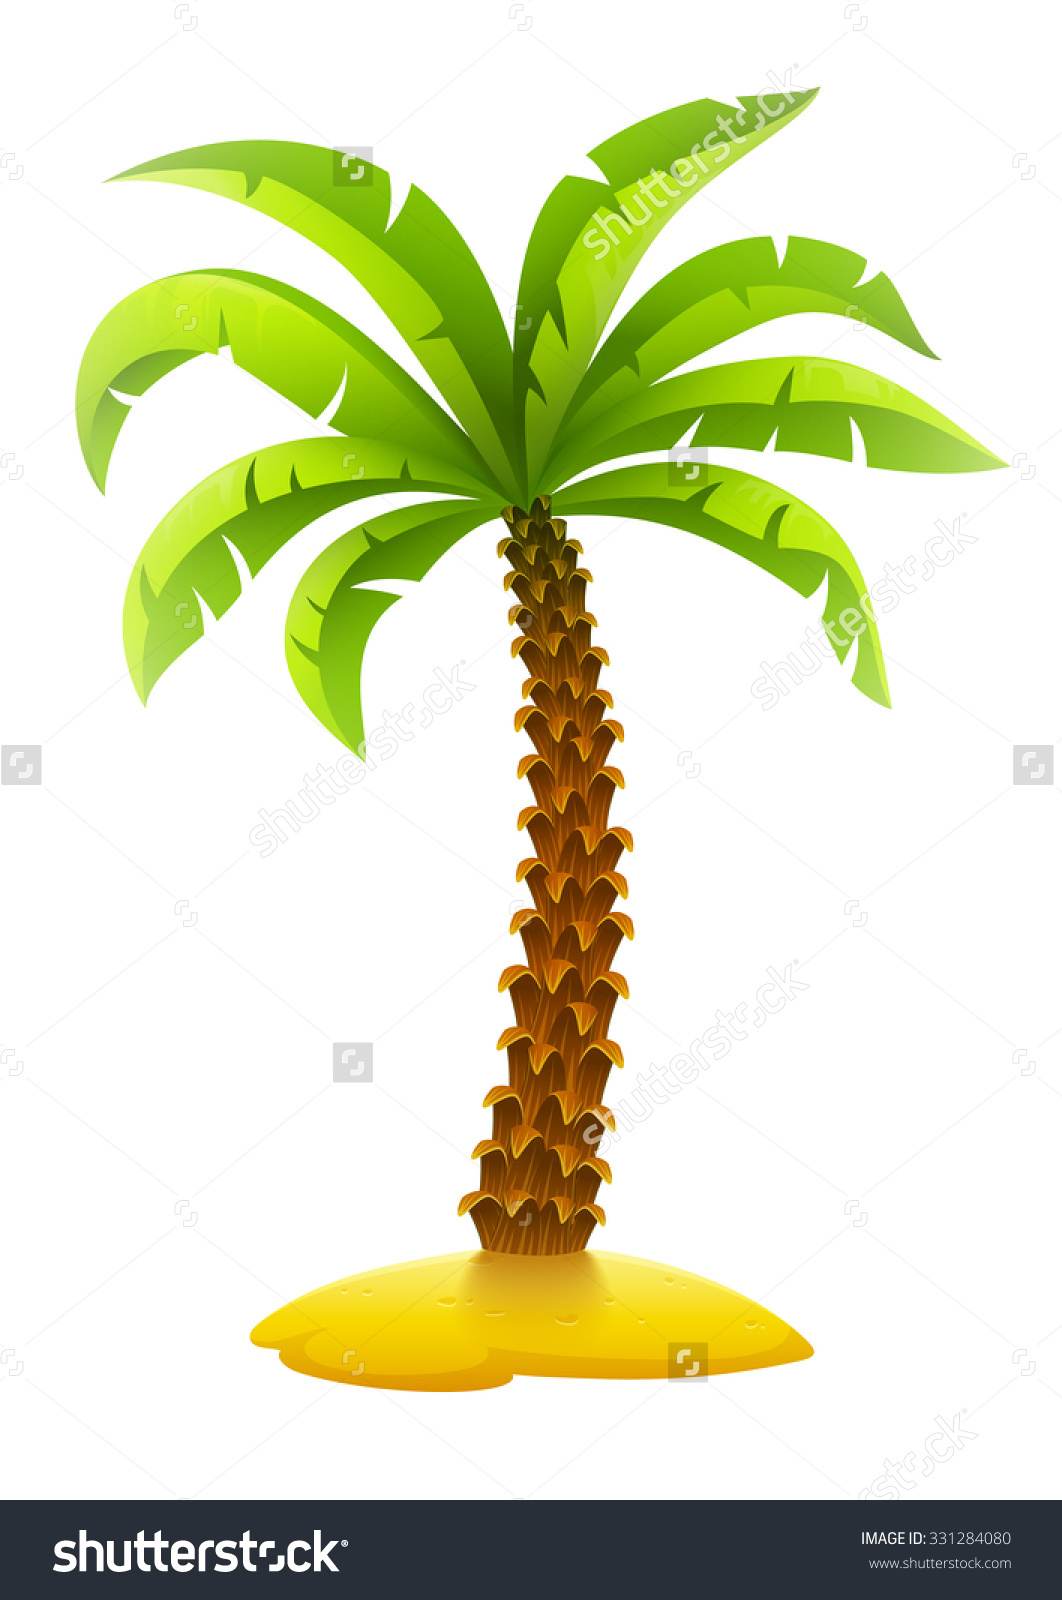 Island clipart transparent background png vector freeuse library Coconut Palm Tree On Sand Island Stock Vector 331284080 - Shutterstock vector freeuse library